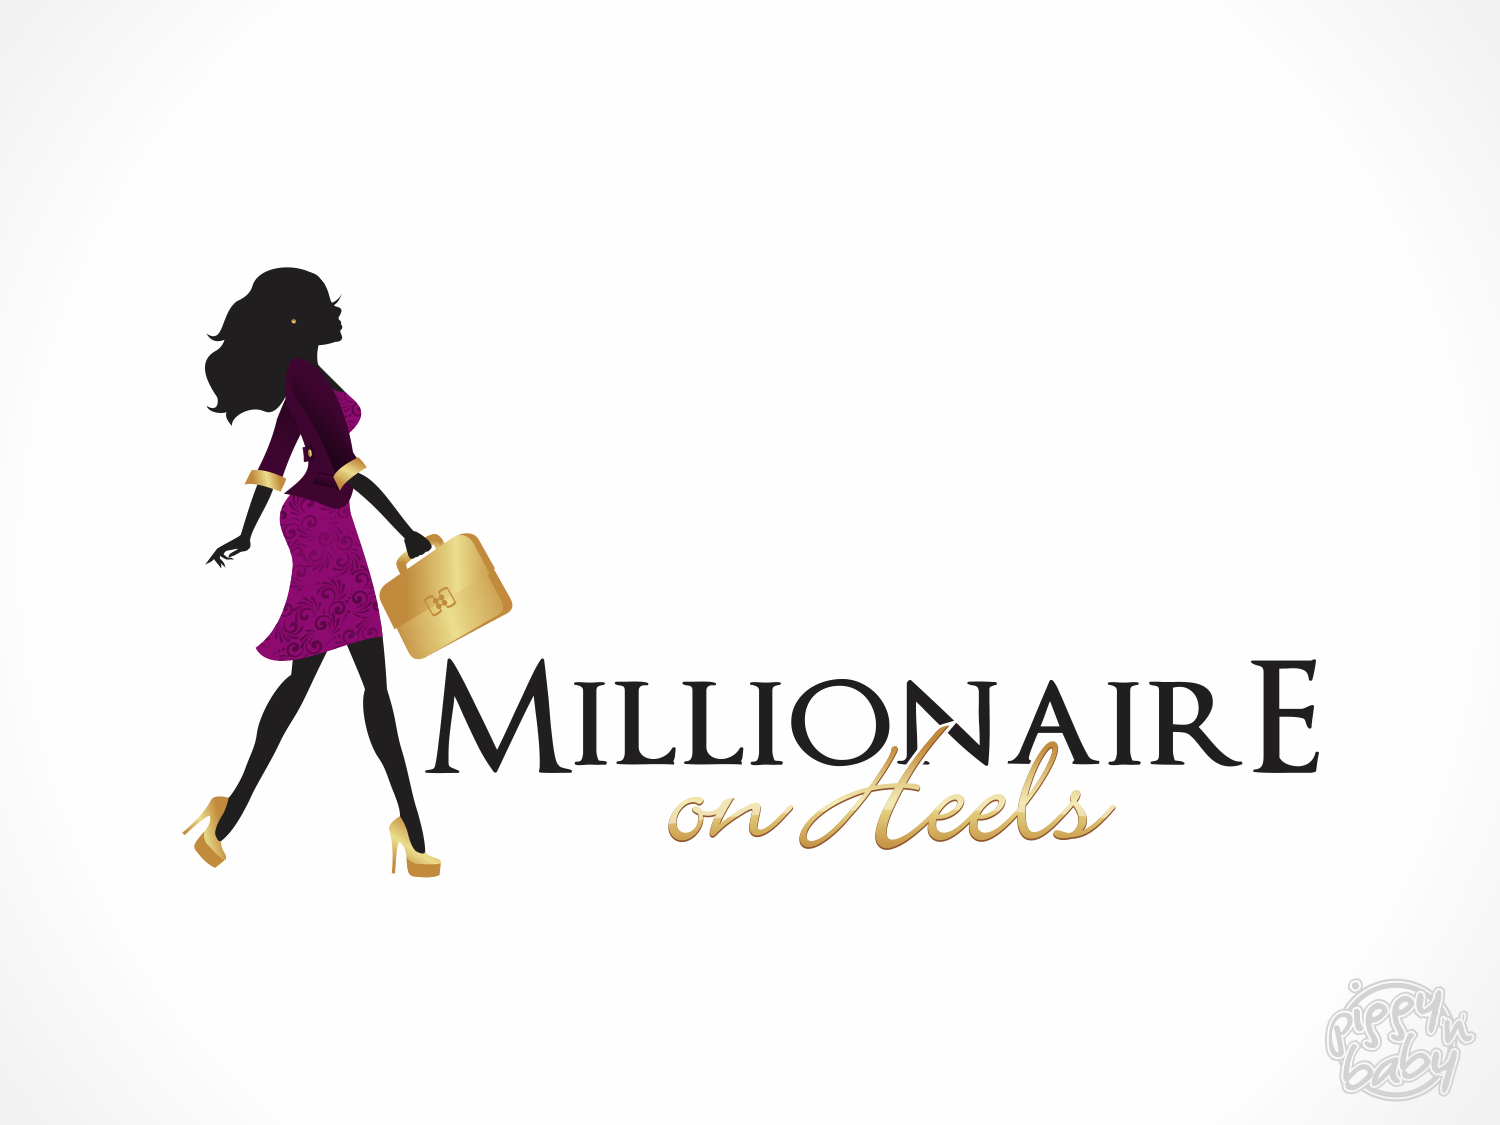 New logo wanted for Millionaire on Heels